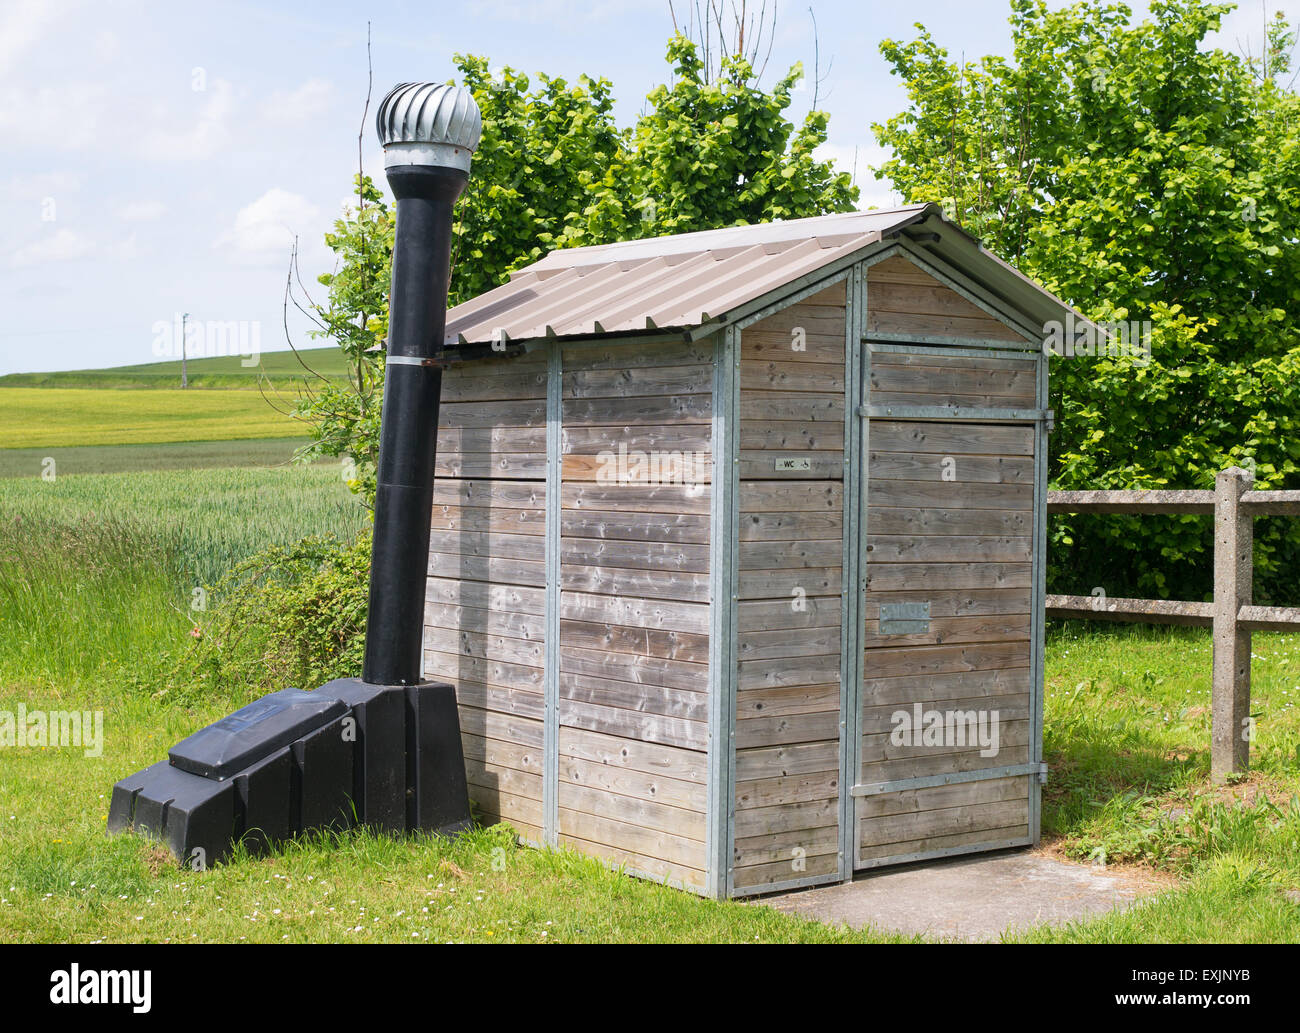 An Enviro Loo or environmentally friendly composting toilet seen on the Greenway or Avenue Verte near Dieppe, France, - Stock Image